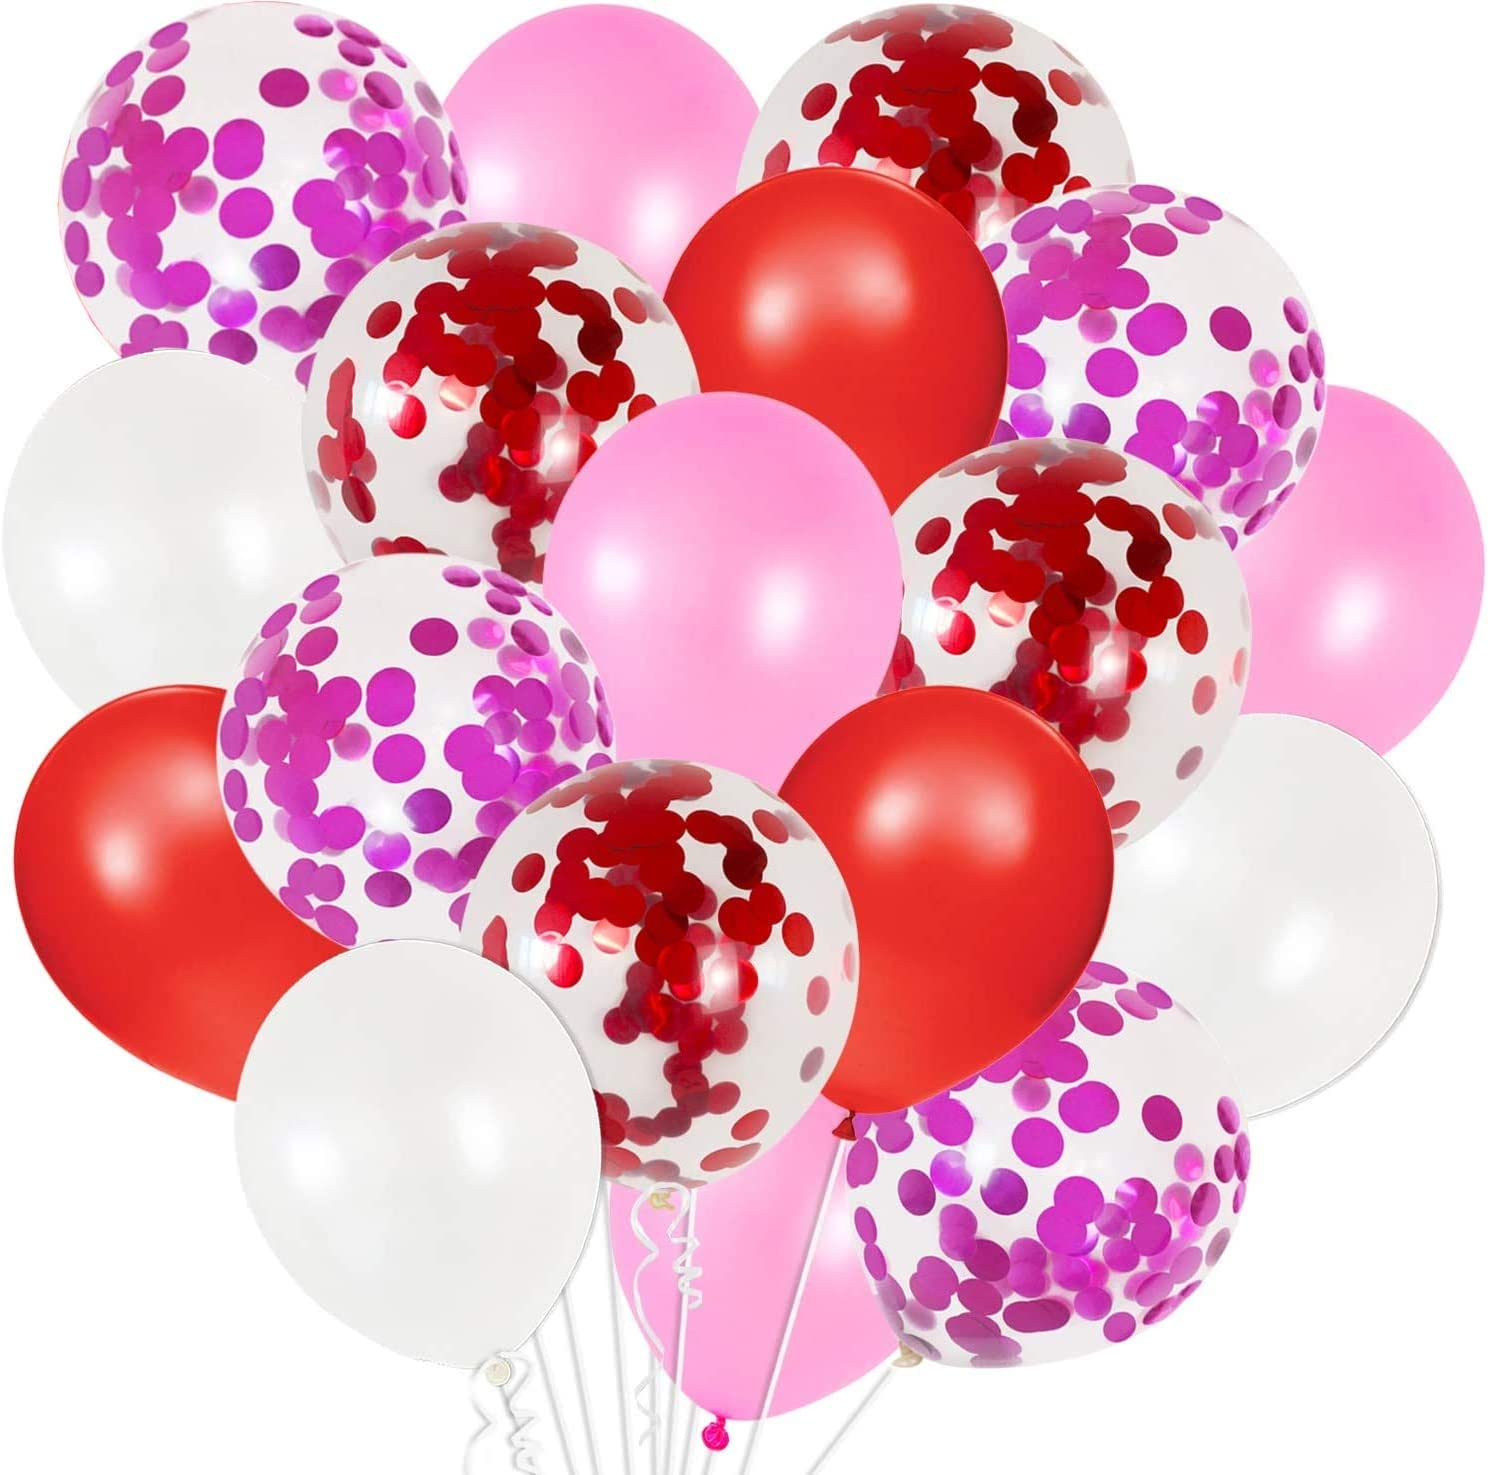 Red White Pink Balloons Set - Pack of 50 | Red Confetti Balloons , Red and White Balloons | Valentines Day Decorations | Valentines Day Balloons Party Decor | Pink, Red and White Balloon Garland Kit